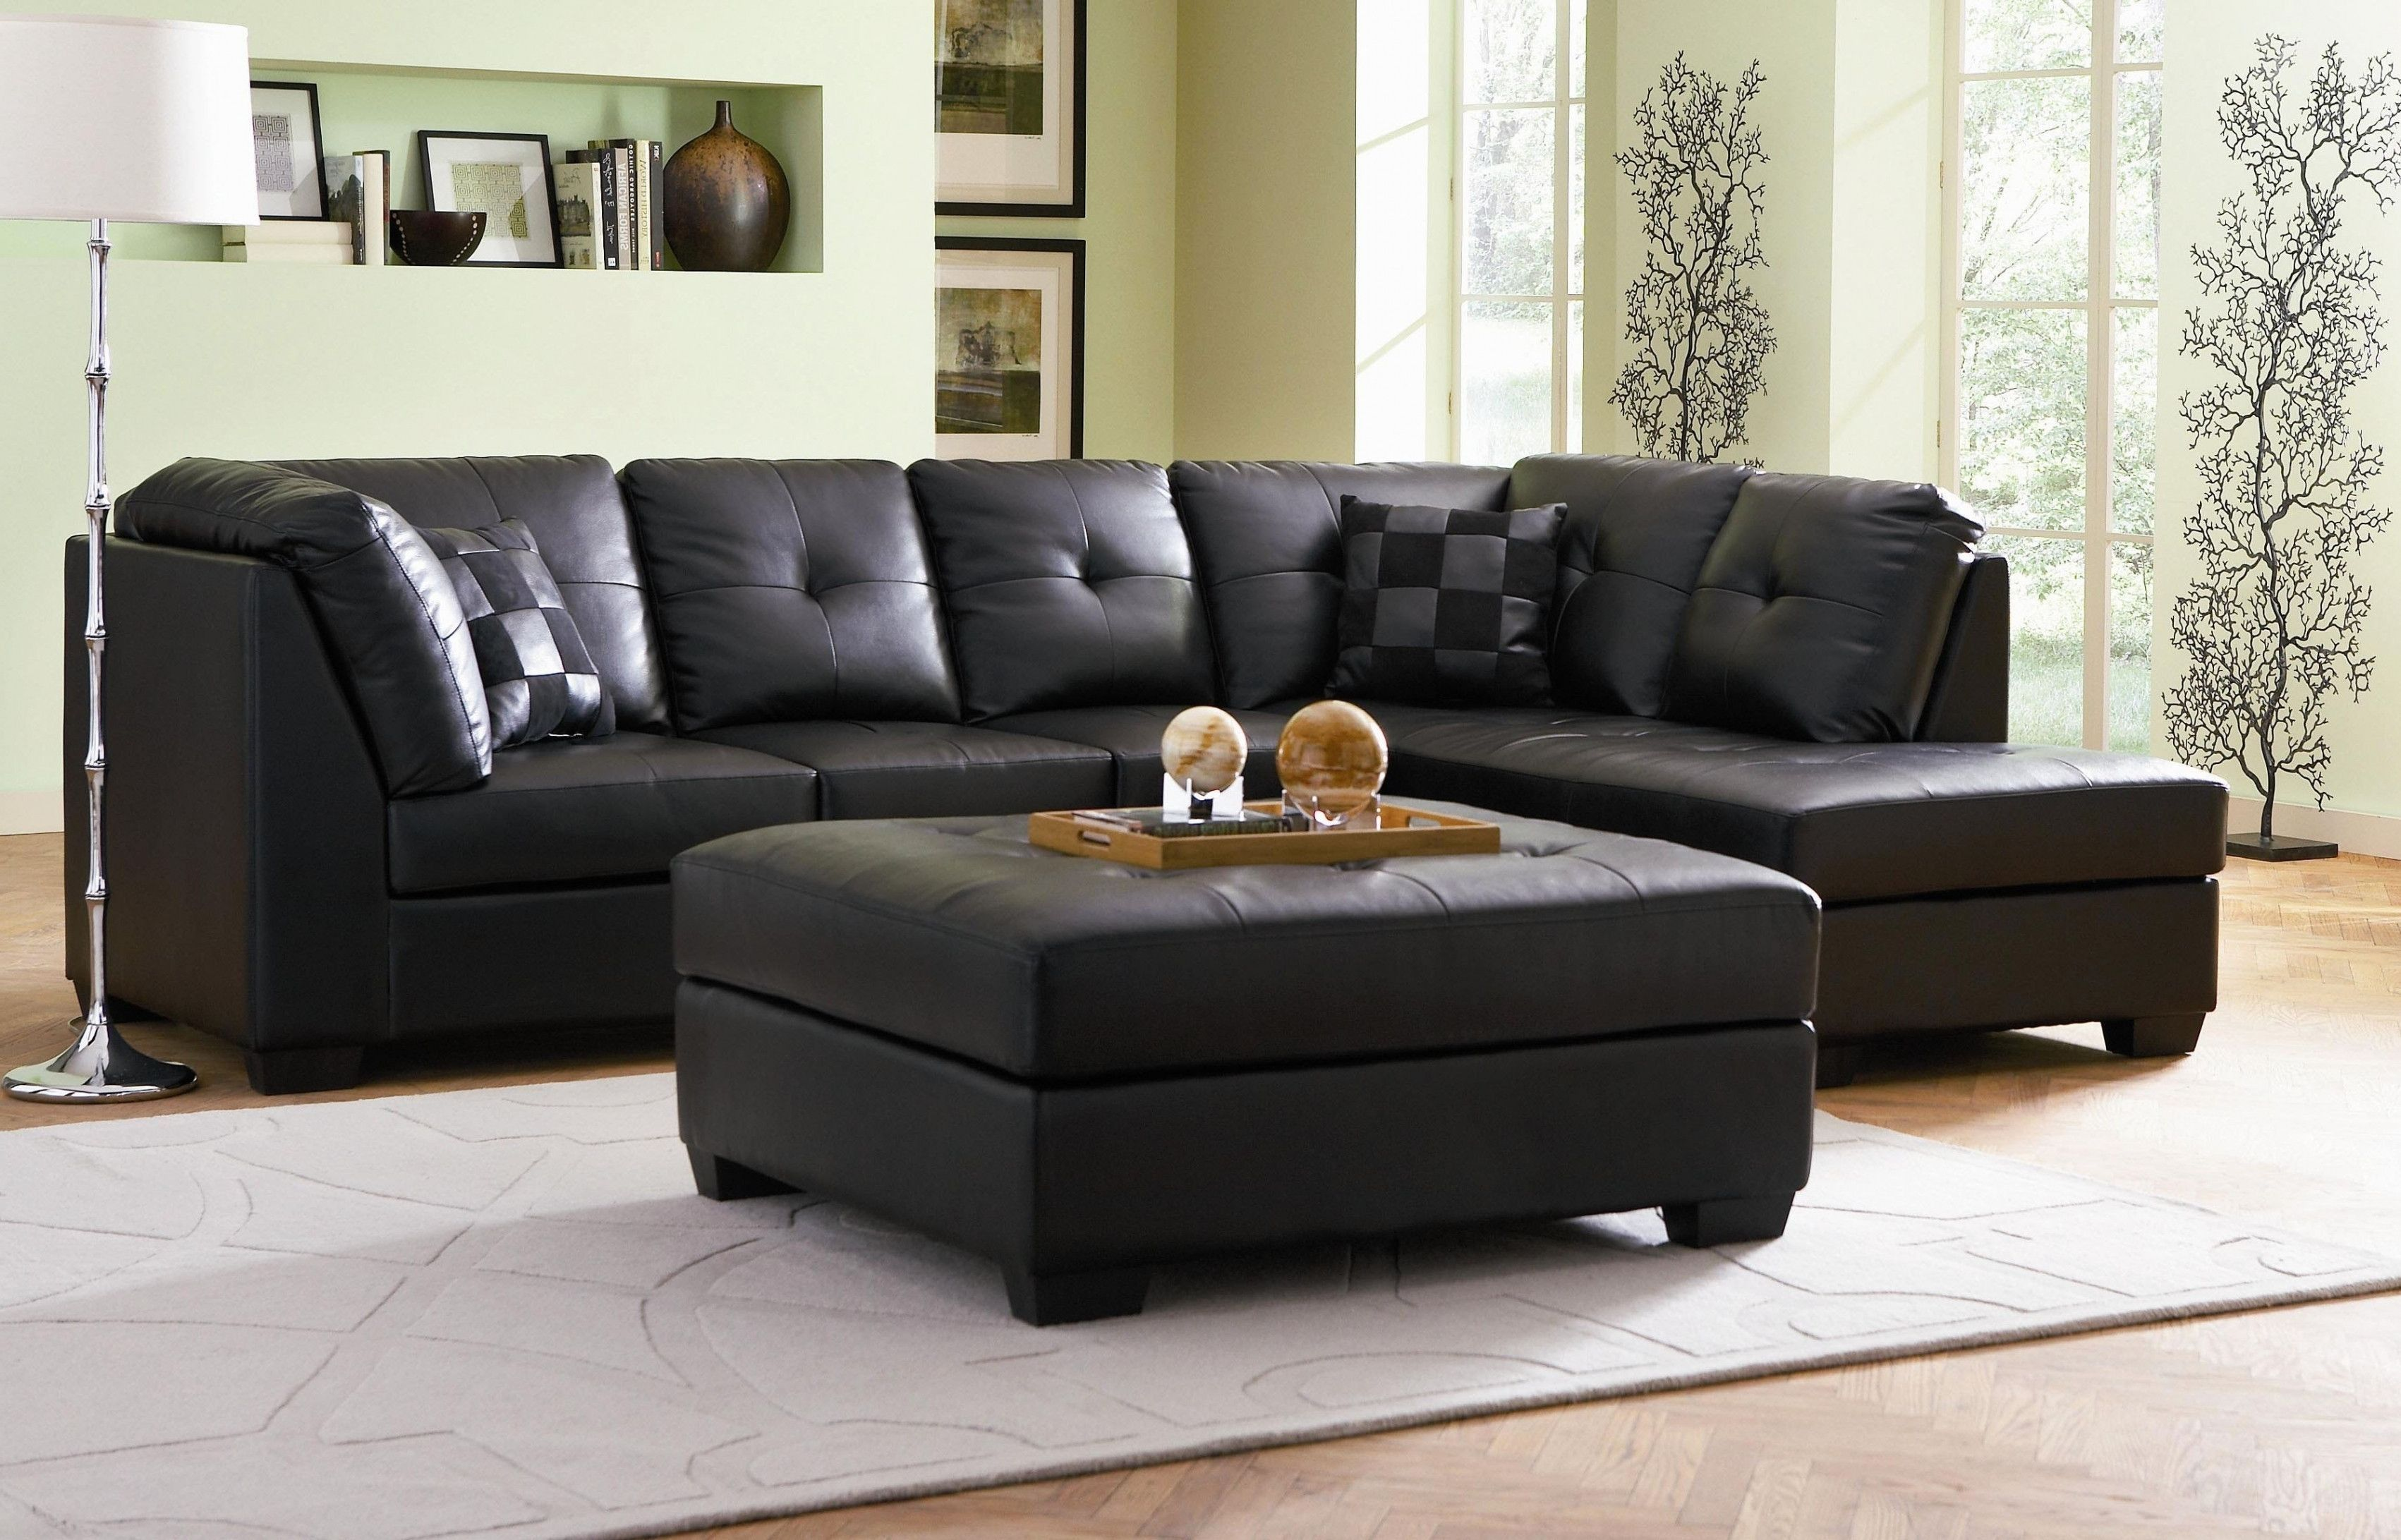 Choosing Sectional Sofa Under 200 Generally Is A Challenge There Are Several Considerations From Color Size Desain Interior Desain Interior Rumah Interior